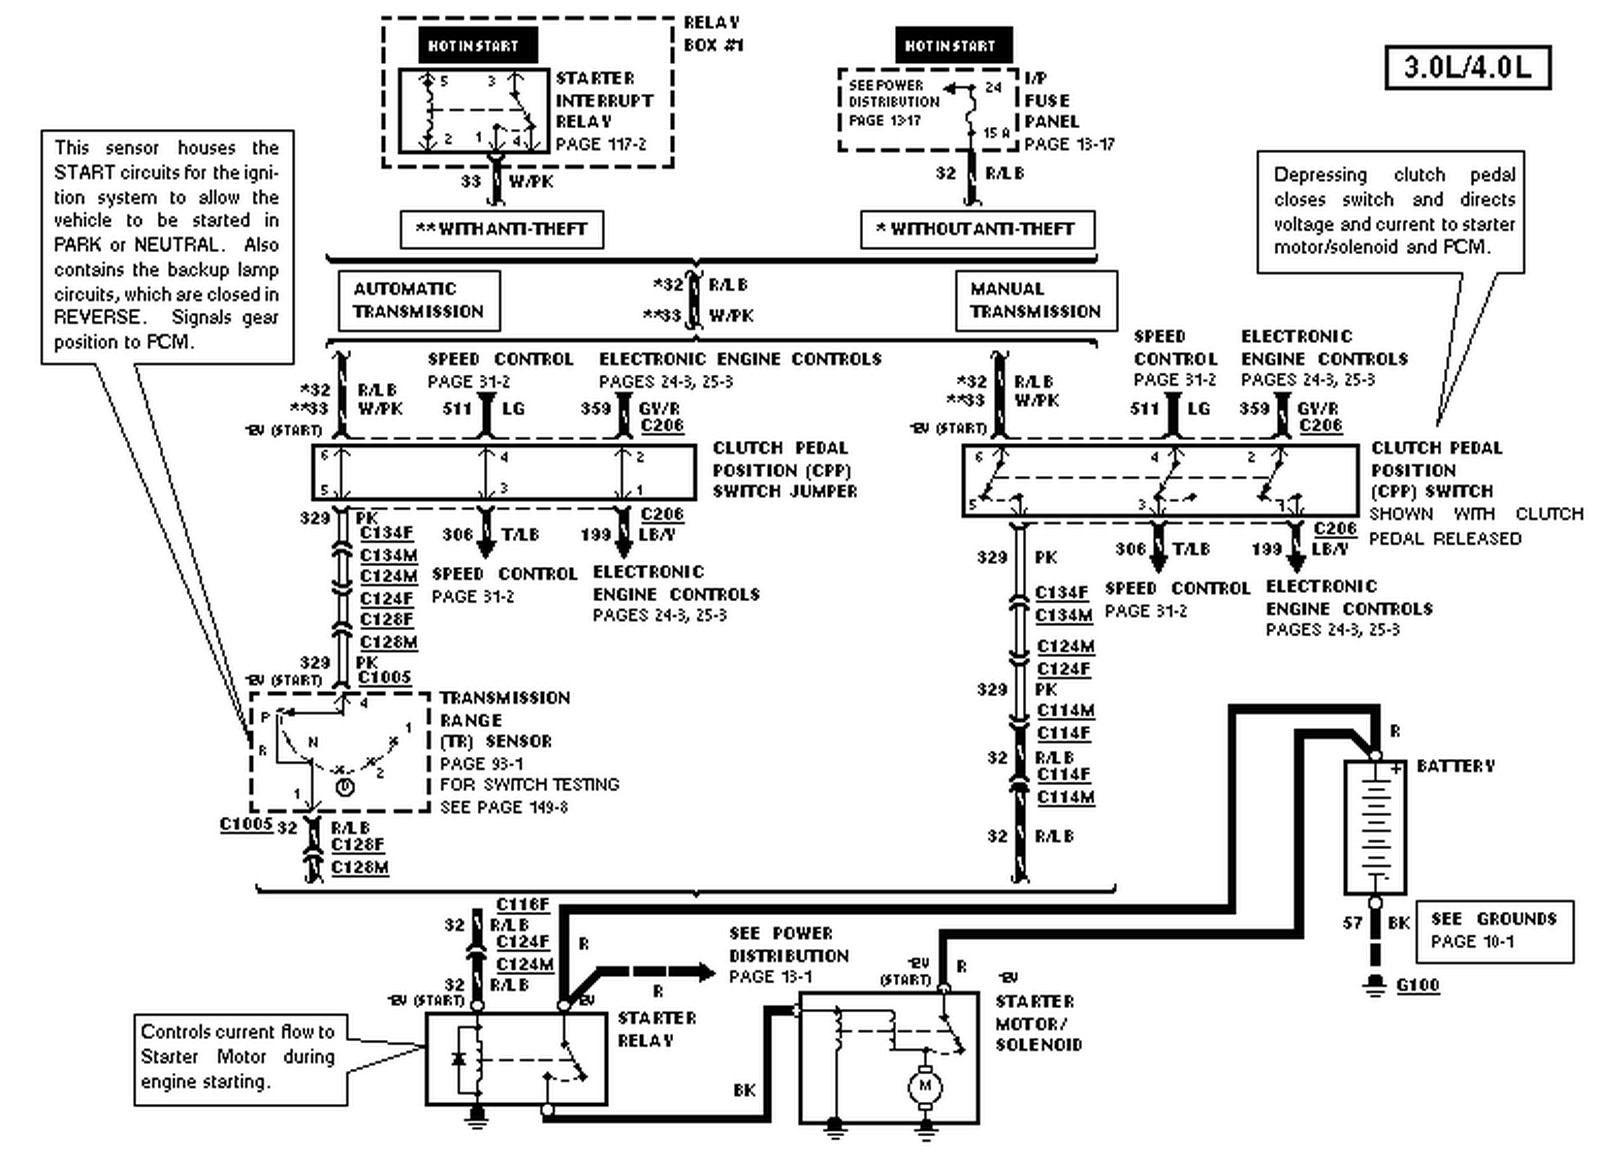 Ranger Starting System Wiring Diagram Great Design Of Images Gallery